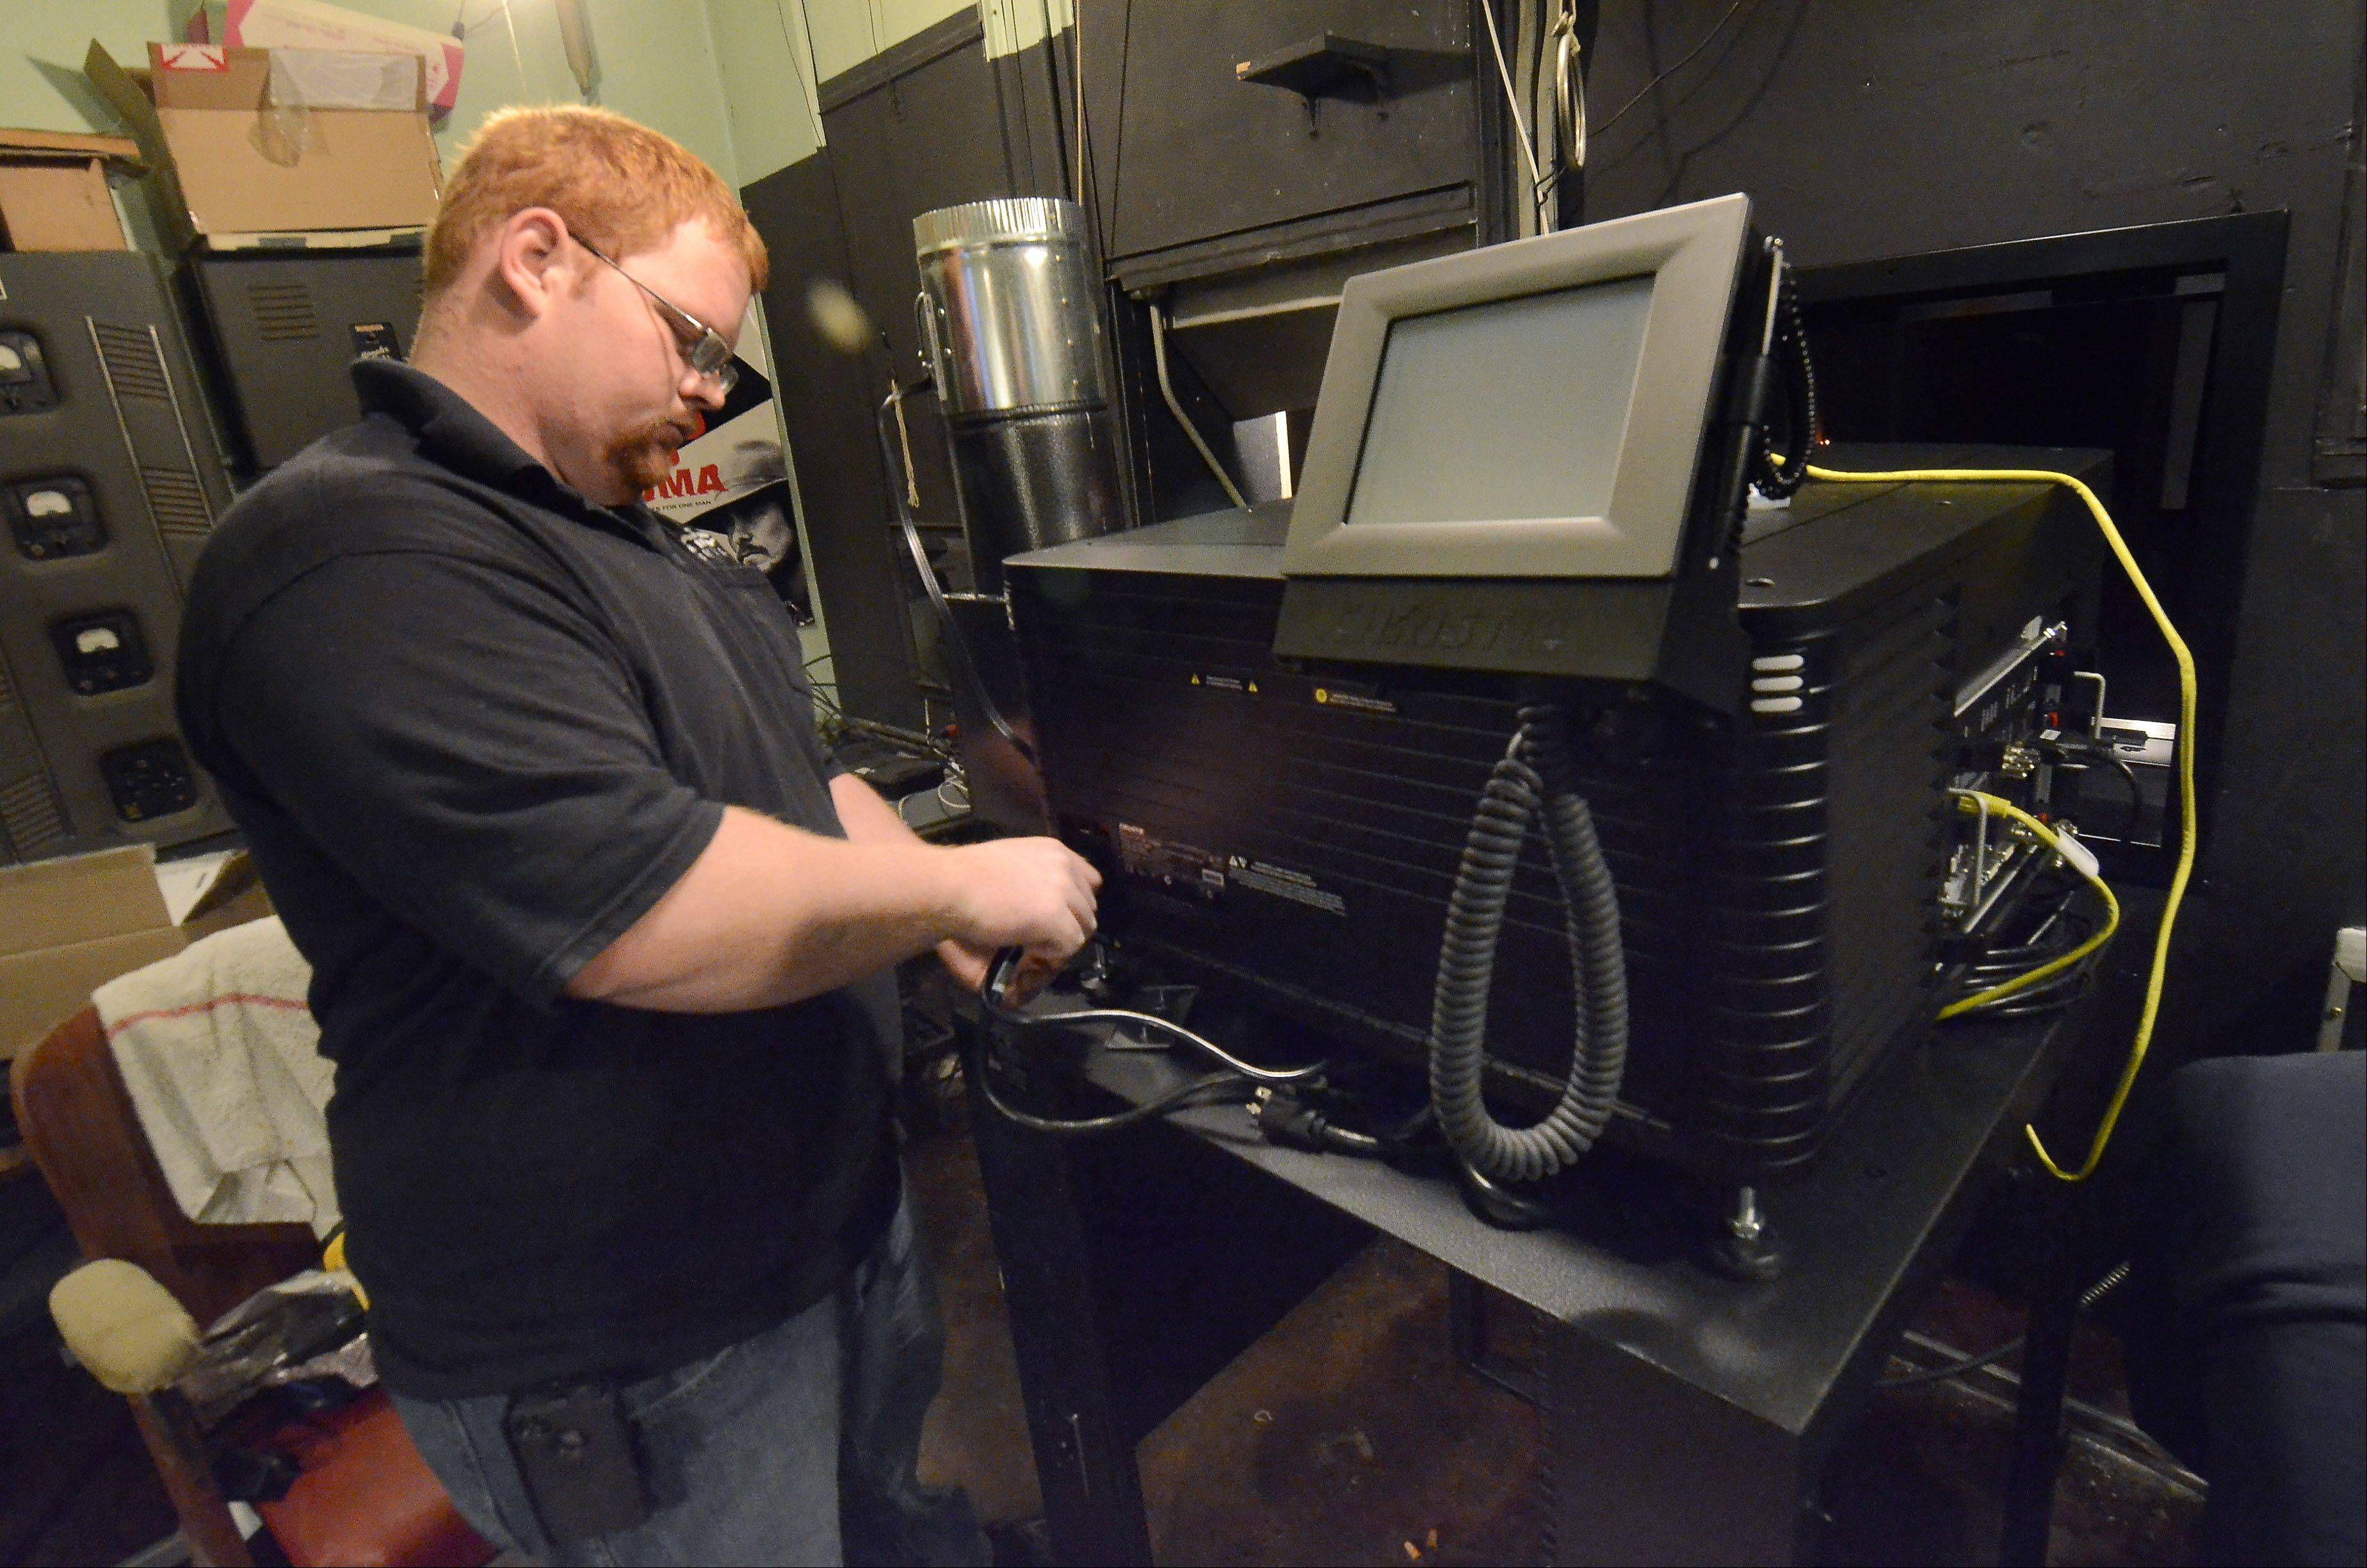 Levi Lampi with Sonic Equipment of Iola, Kan., works on the installation of the new digital projector at the Catlow theater in Barrington. The new projector, which will allow the theater to remain open, was purchased through patron donations.